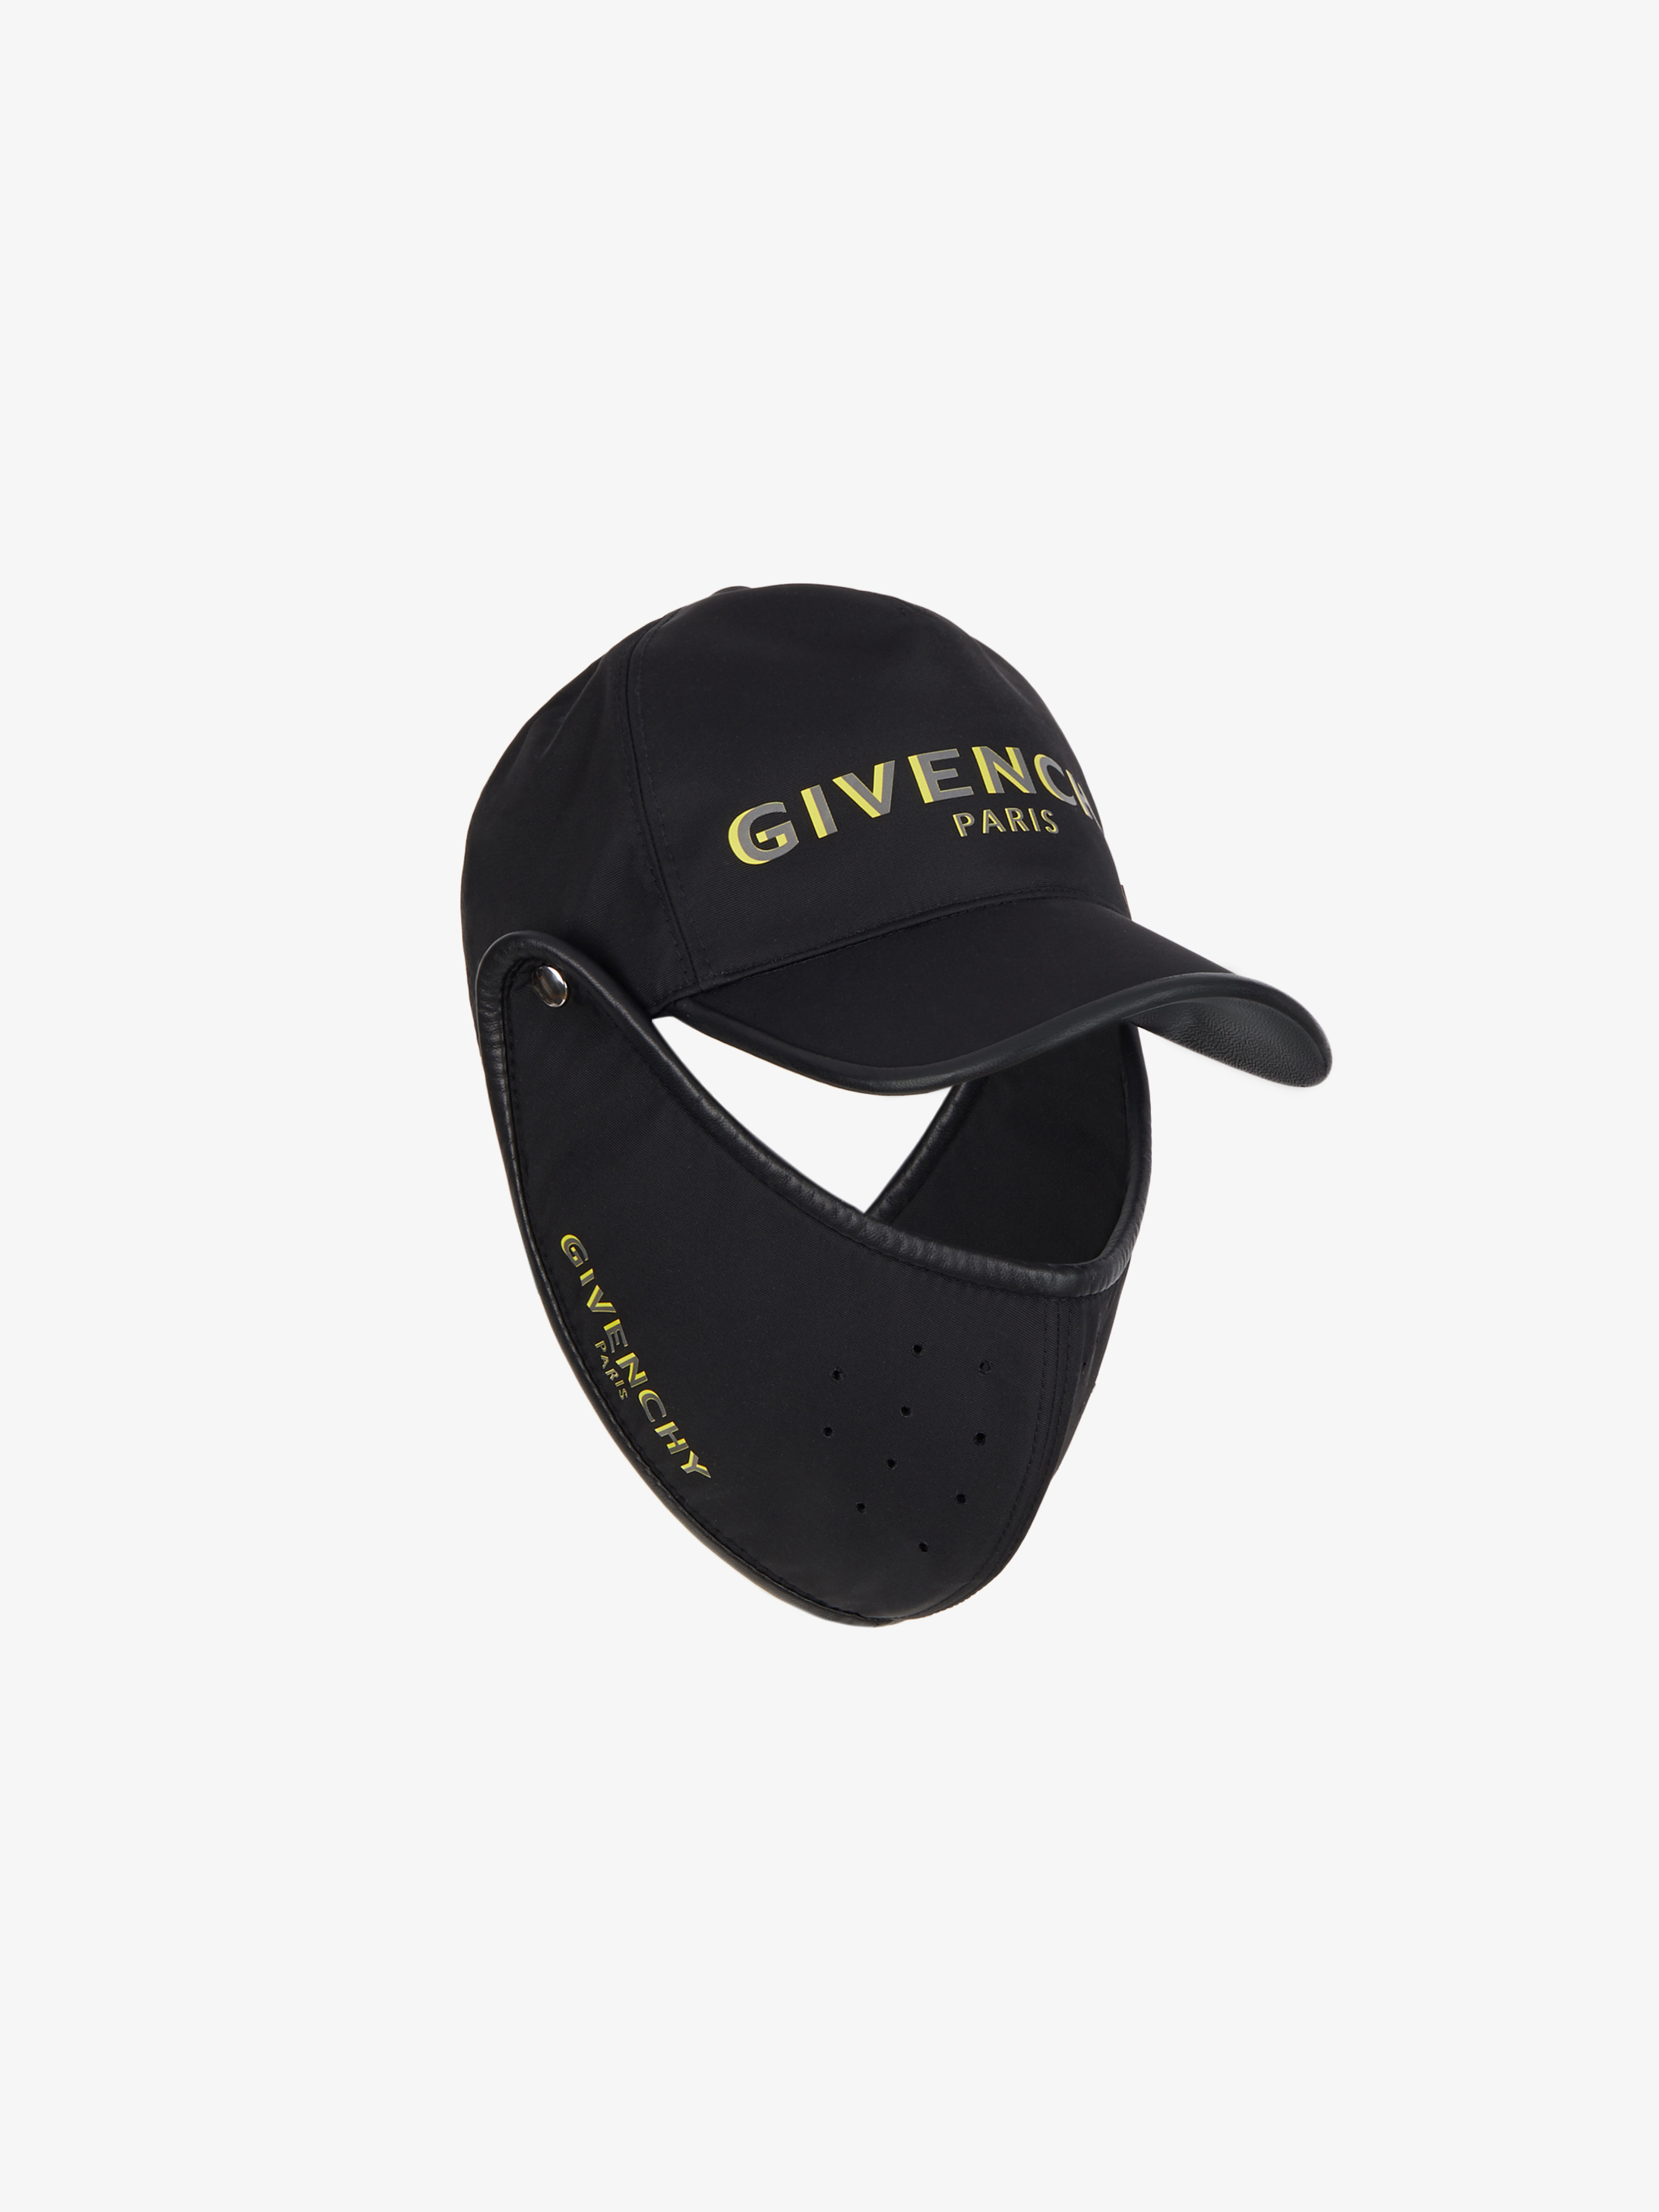 GIVENCHY PARIS cap with mask